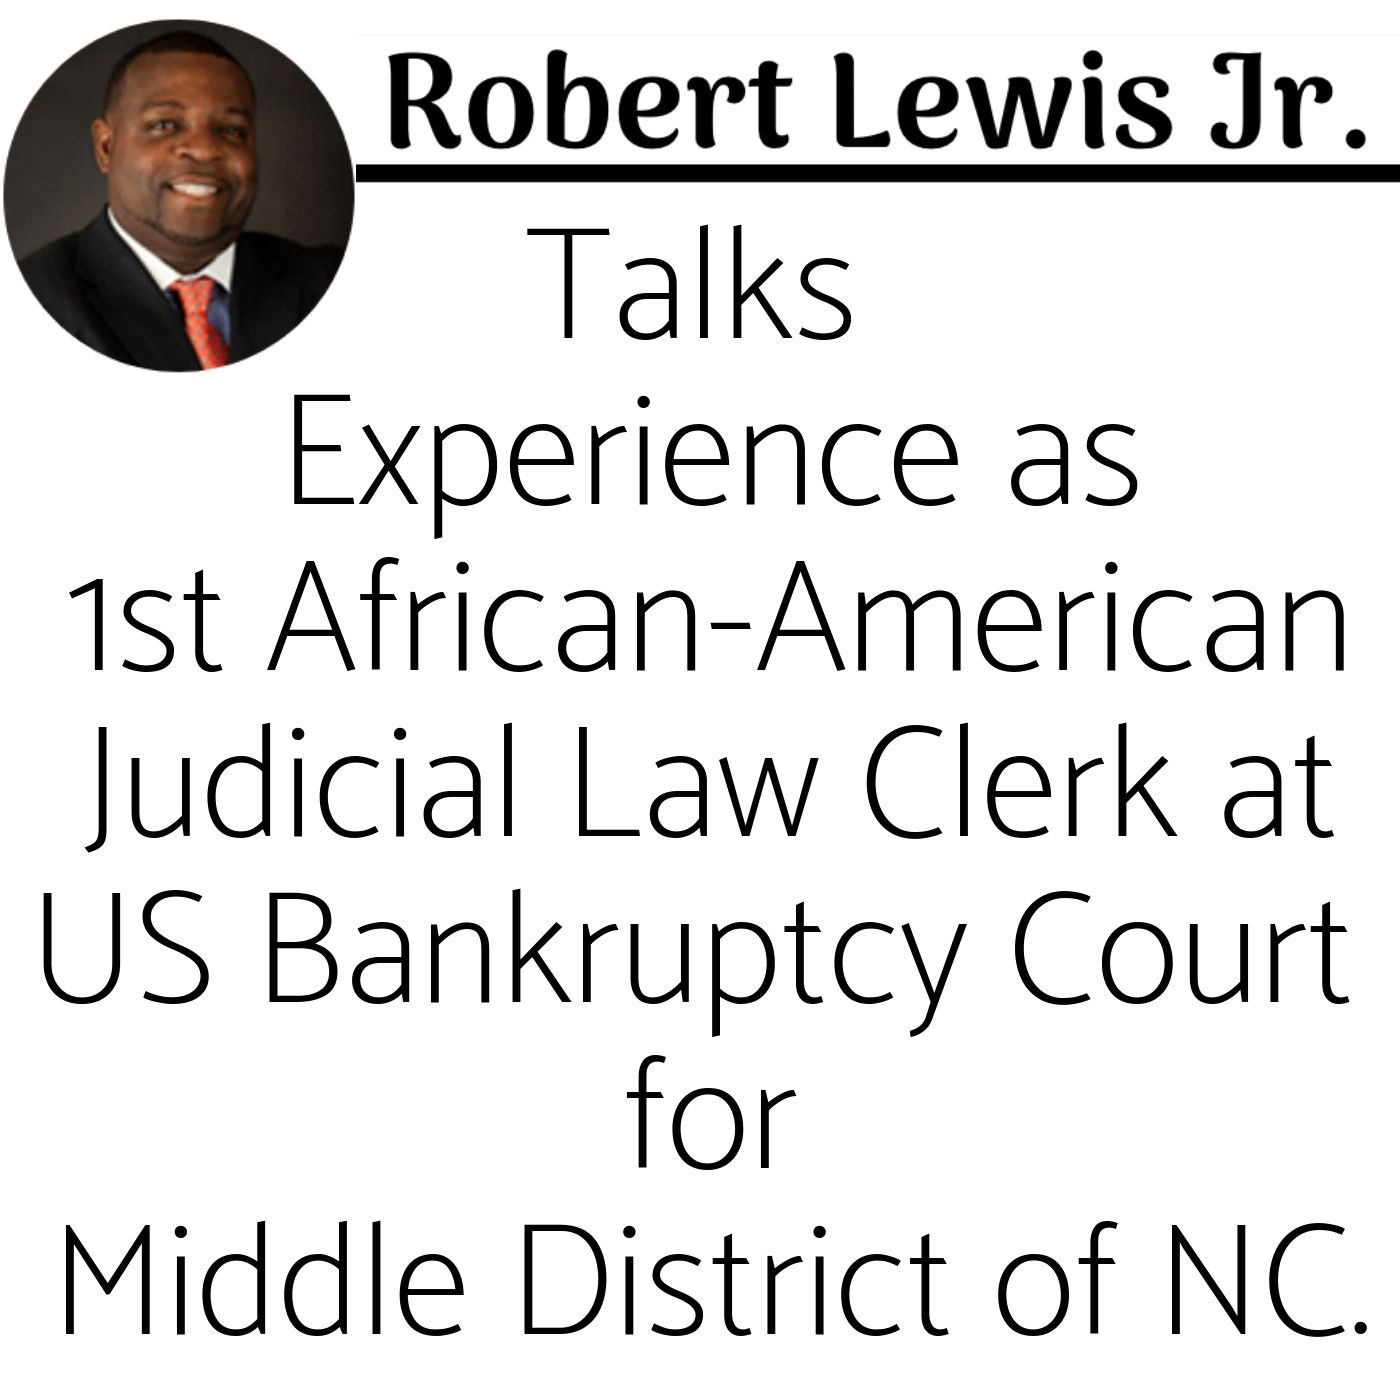 Episode 58: Part 1 of 3  Robert Lewis Jr. Talks Experience 1st African American Judicial Law Clerk US Bankruptcy Court Middle District of NC